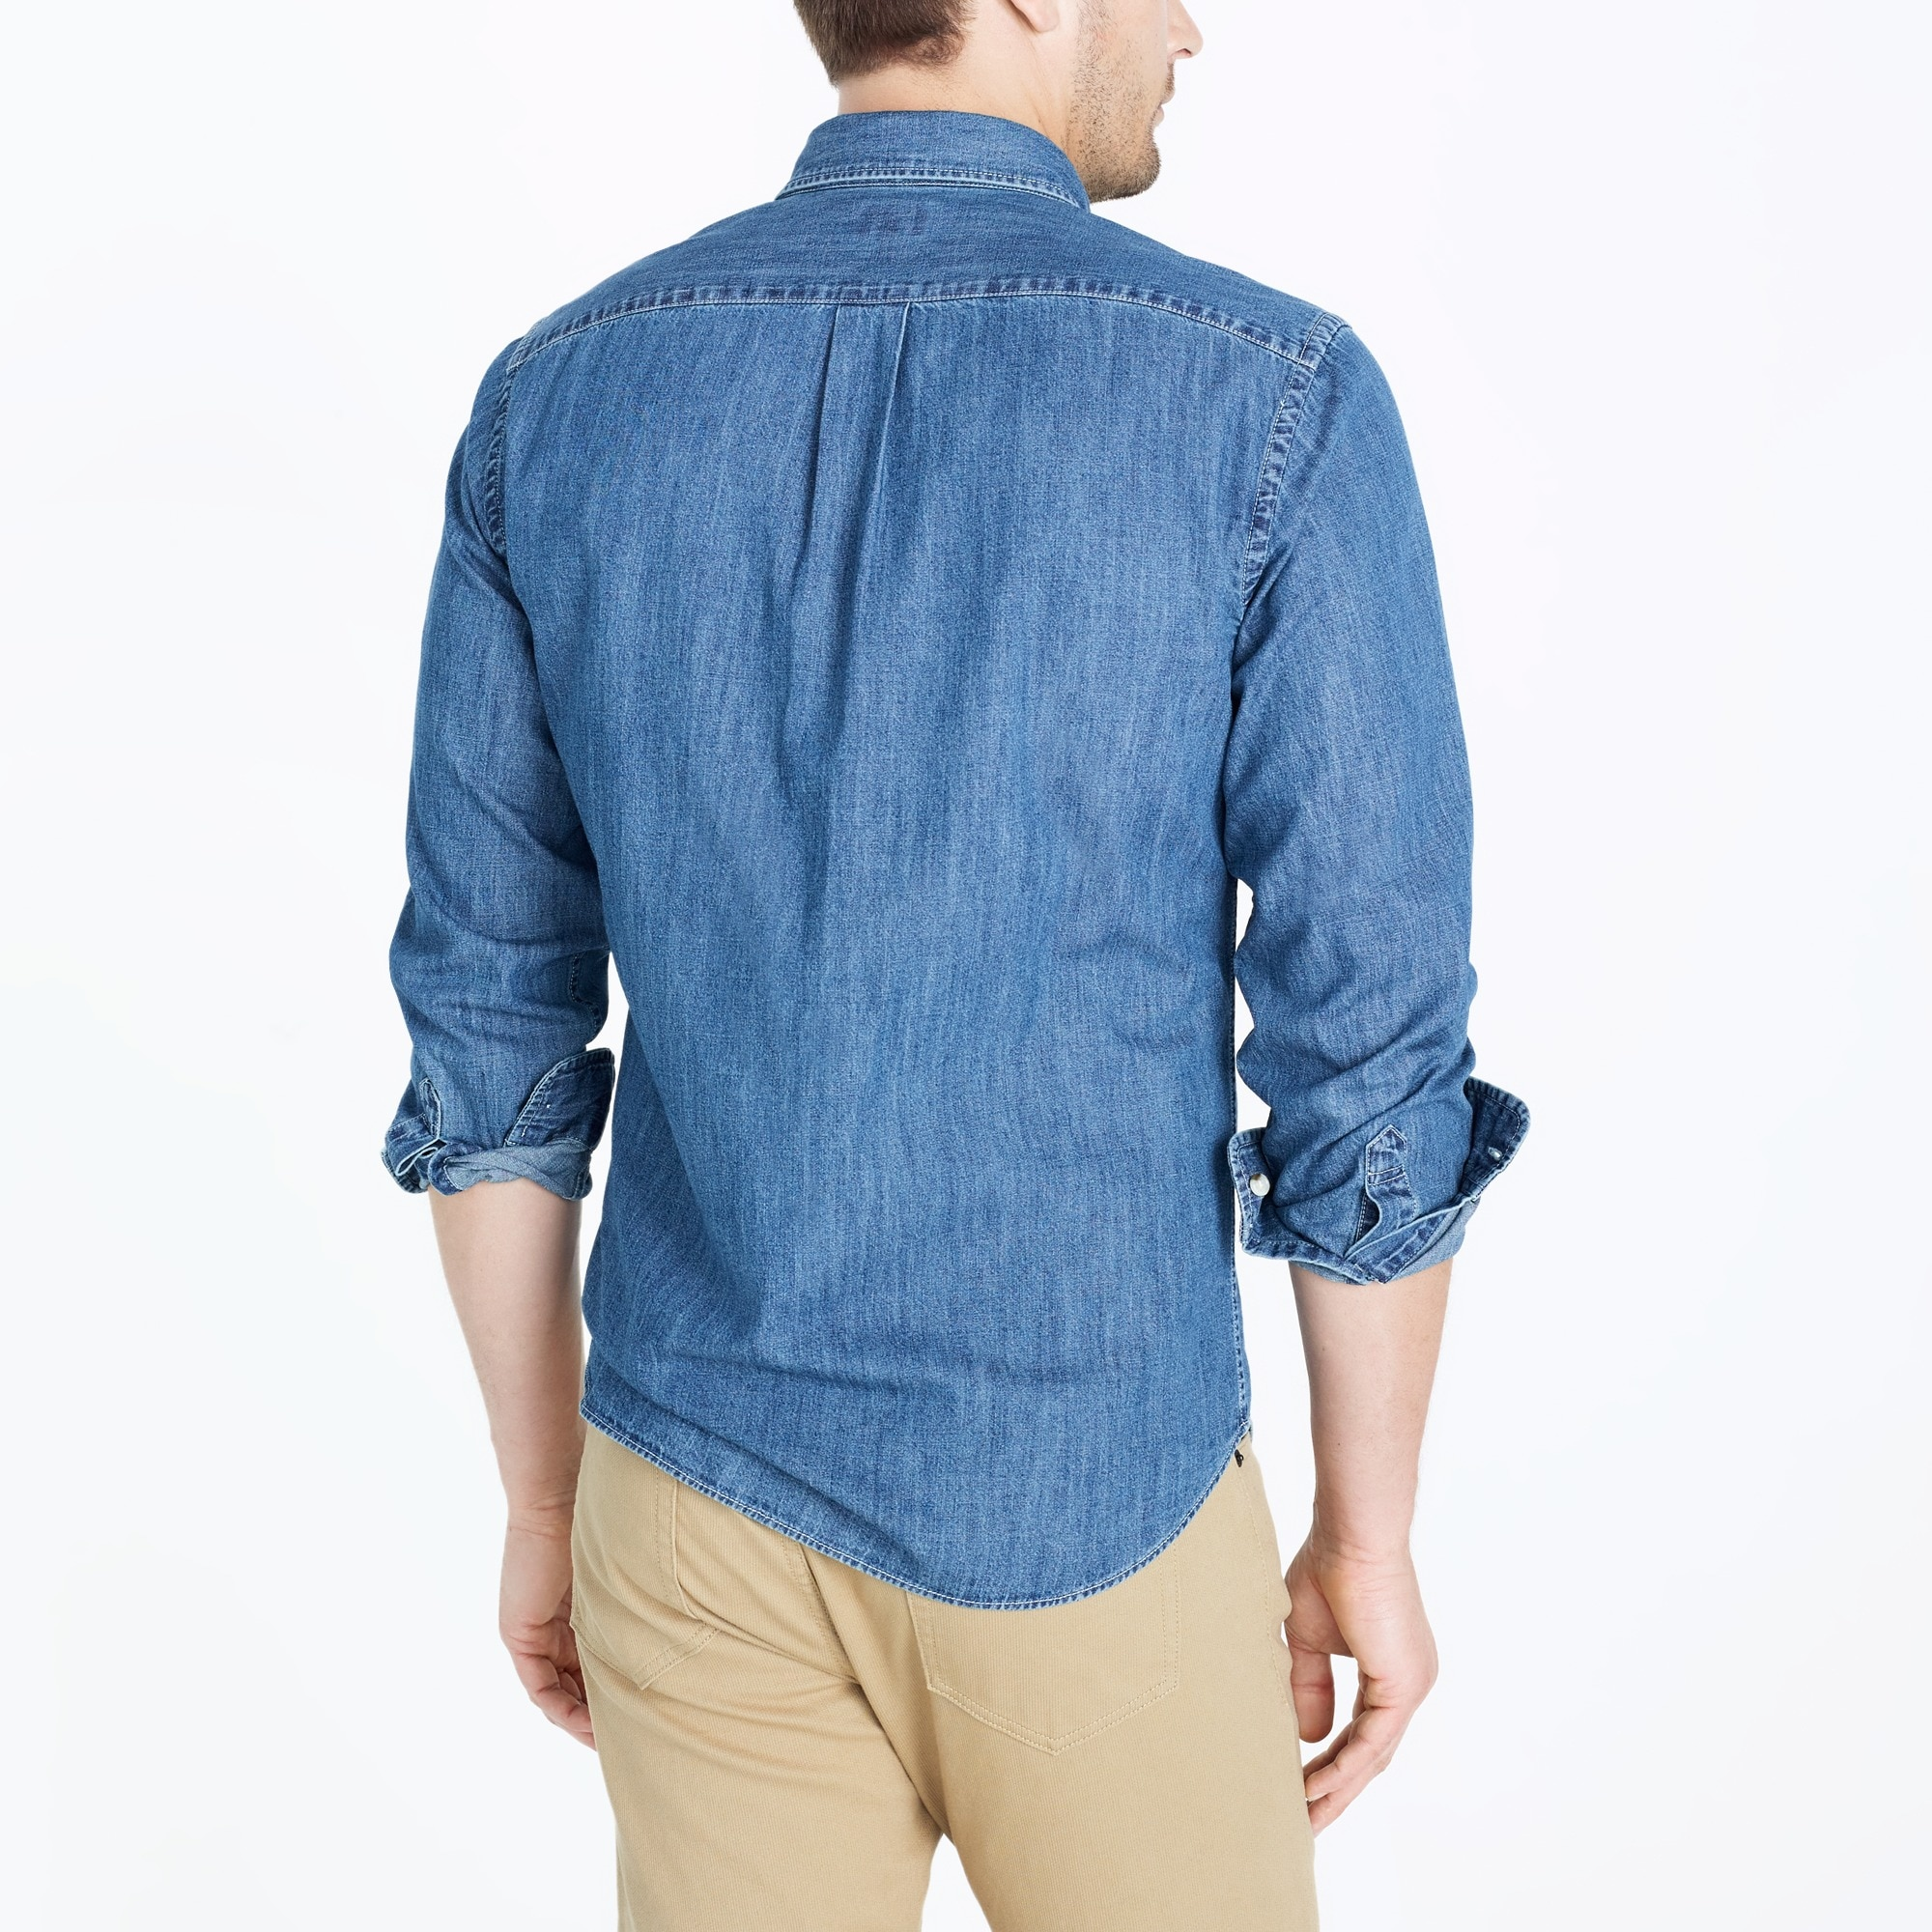 Image 3 for Lightweight denim workshirt